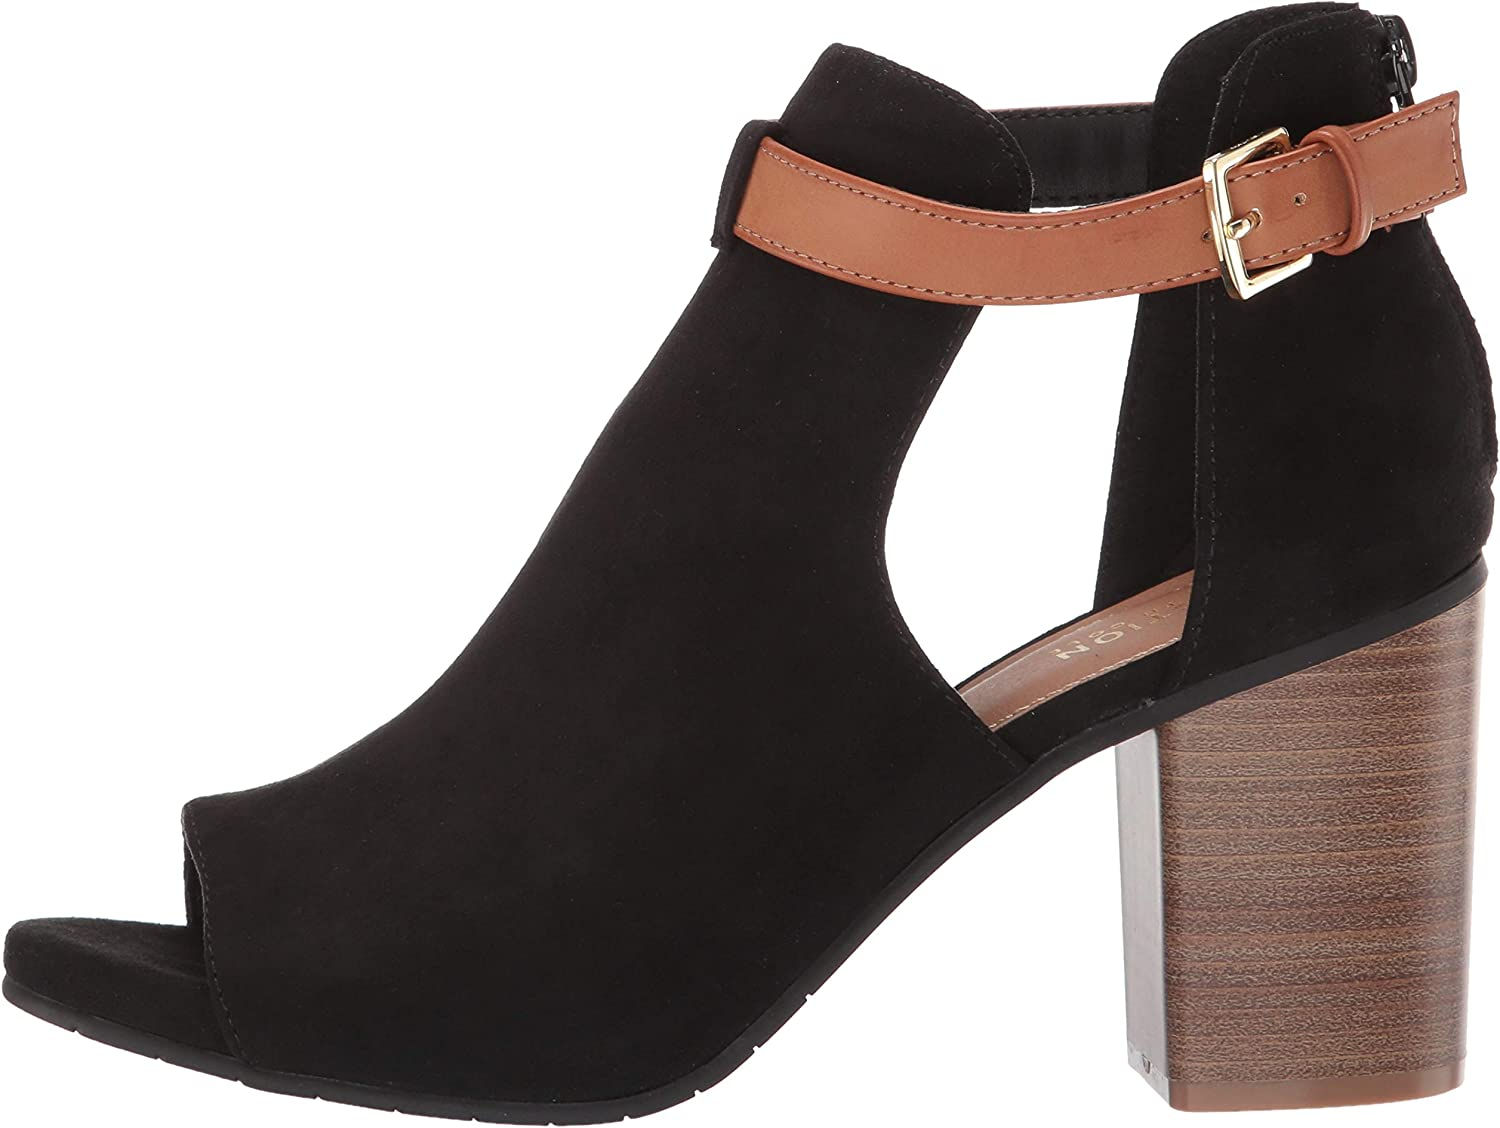 Kenneth Cole REACTION Womens Hit Hooded Bootie Ankle Boot